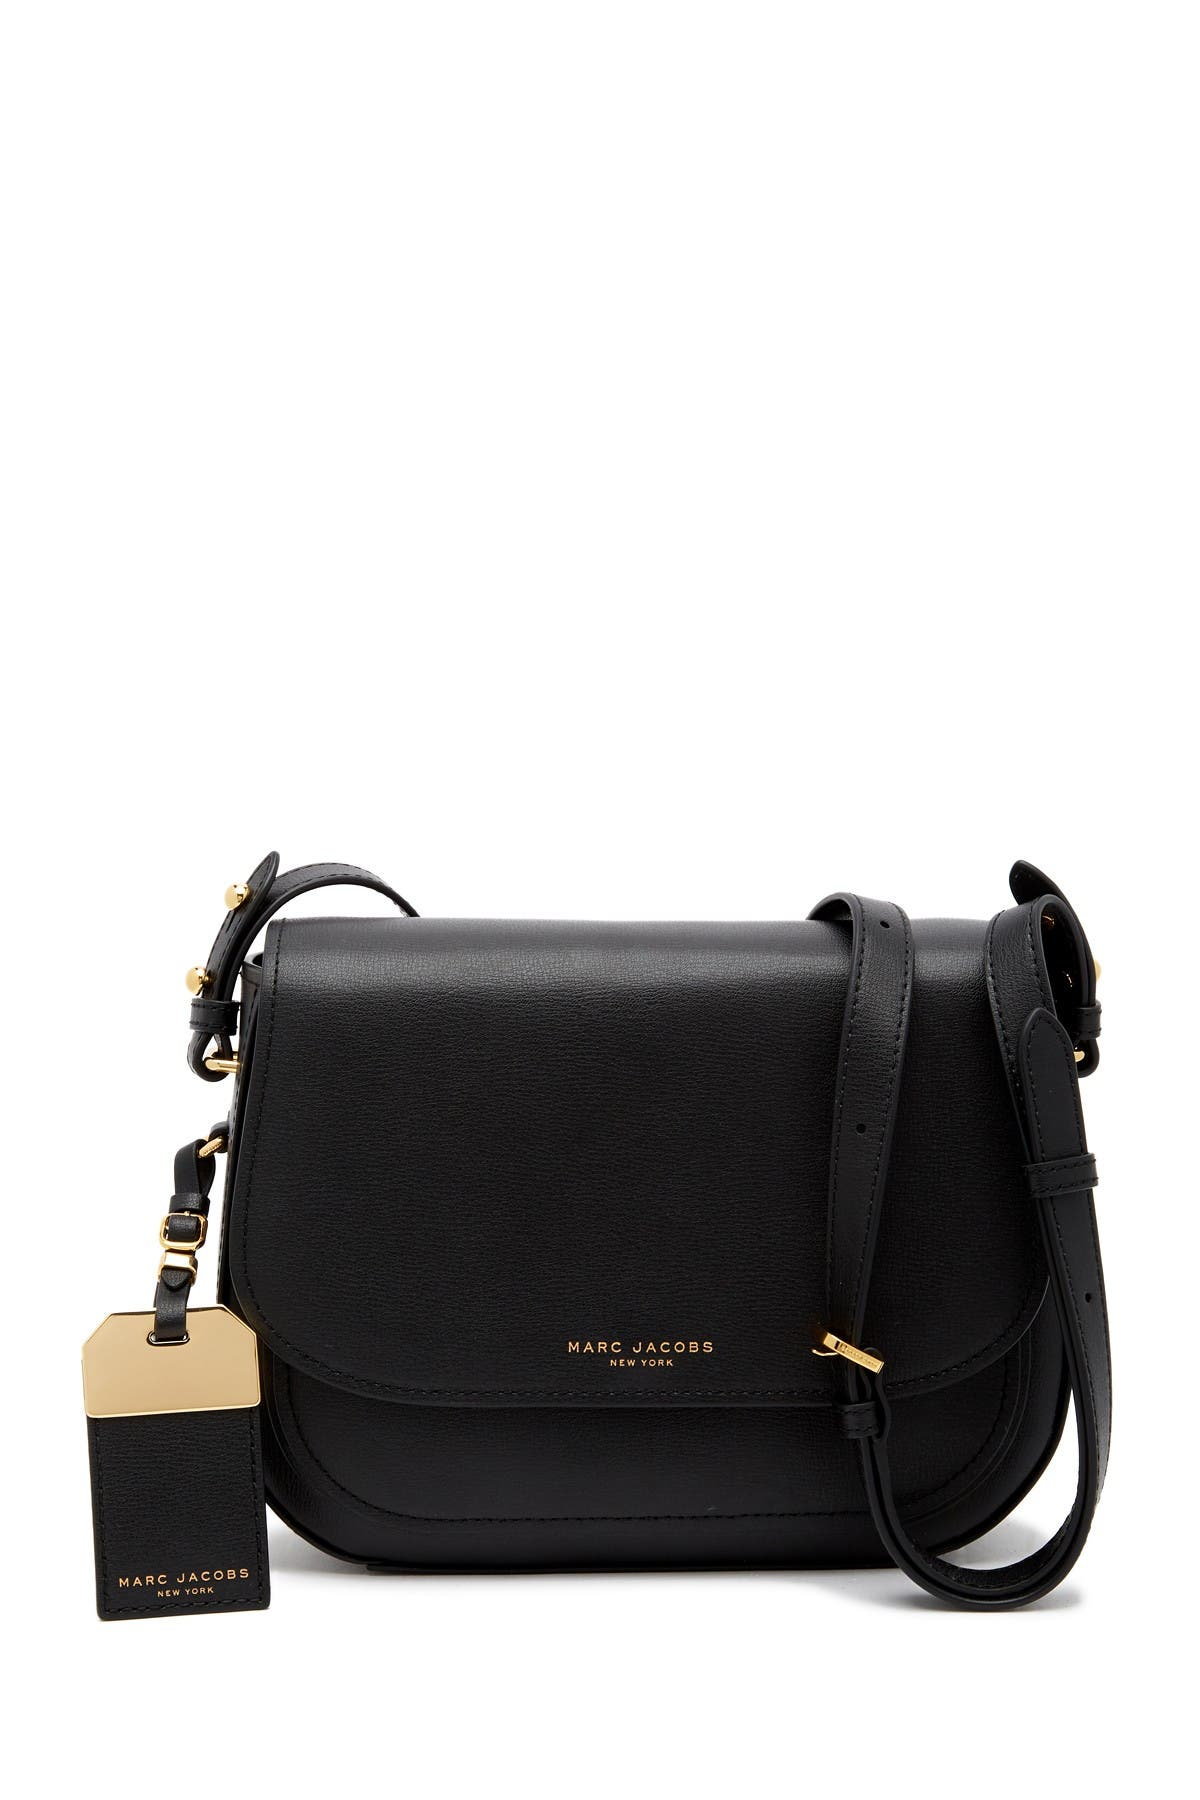 Image of Marc Jacobs Rider Leather Crossbody Bag